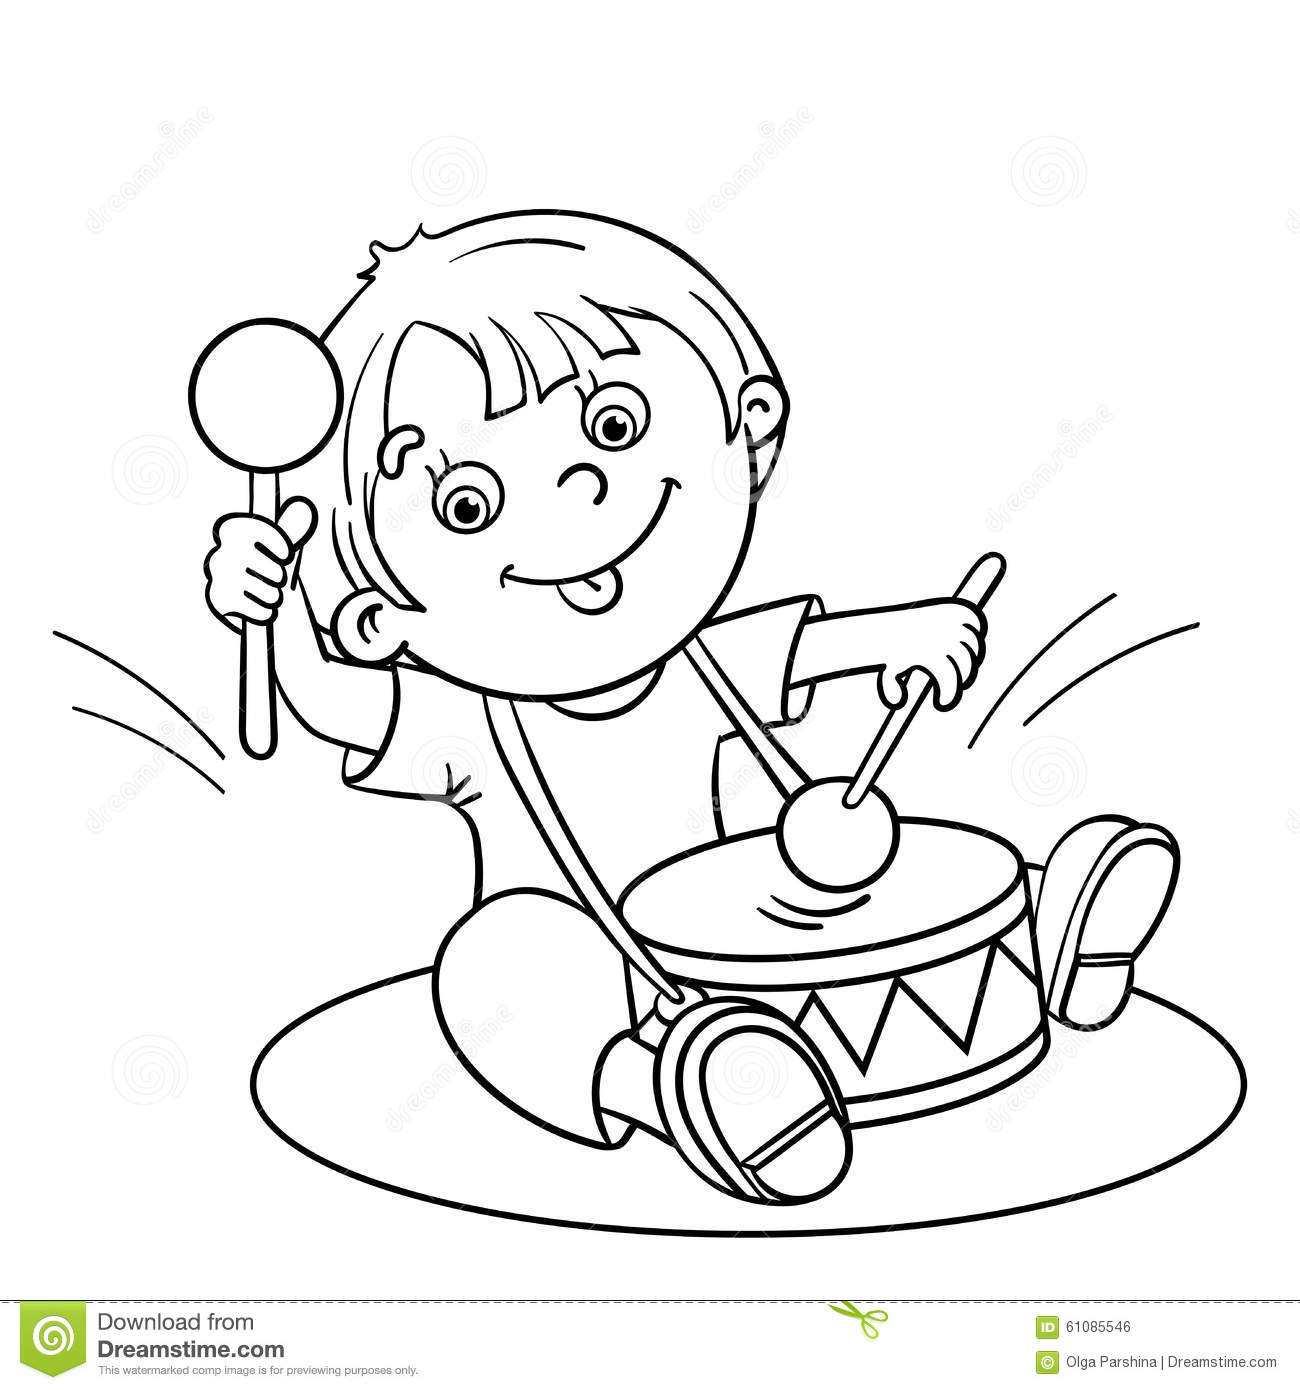 Coloring Page Outline Of A Cartoon Boy Playing The Drum